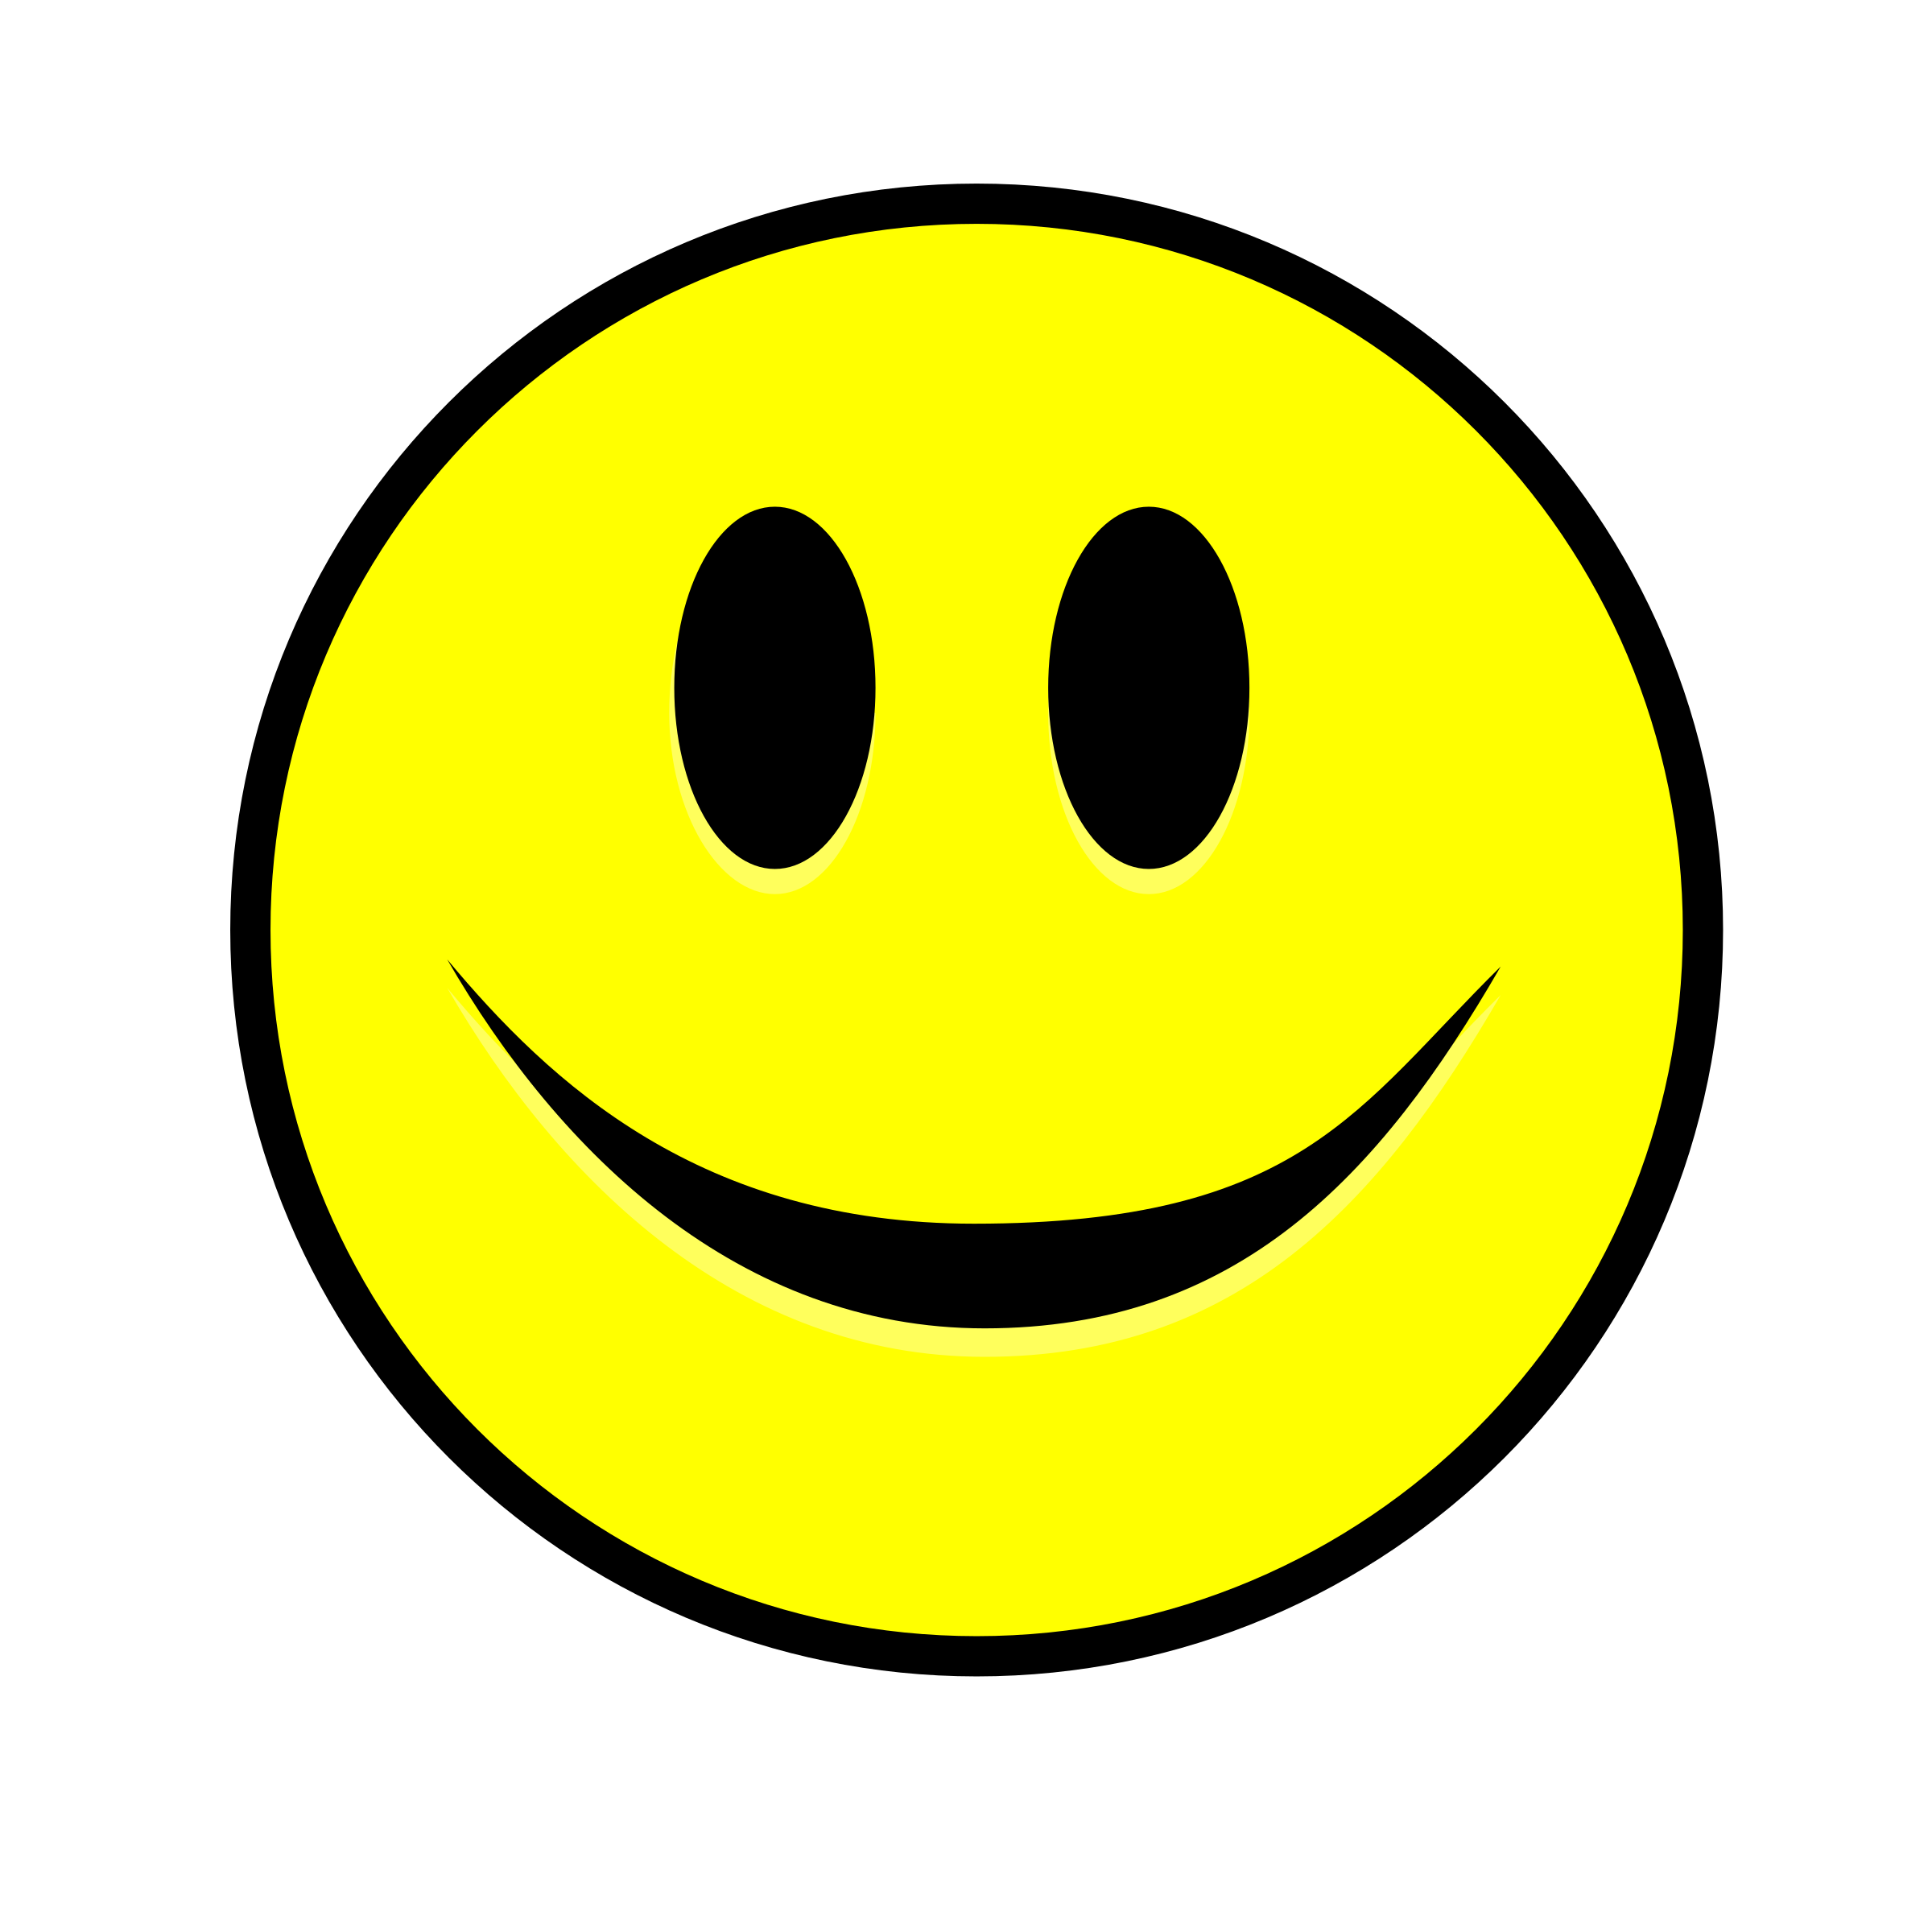 Download High Quality smile clipart logo Transparent PNG.